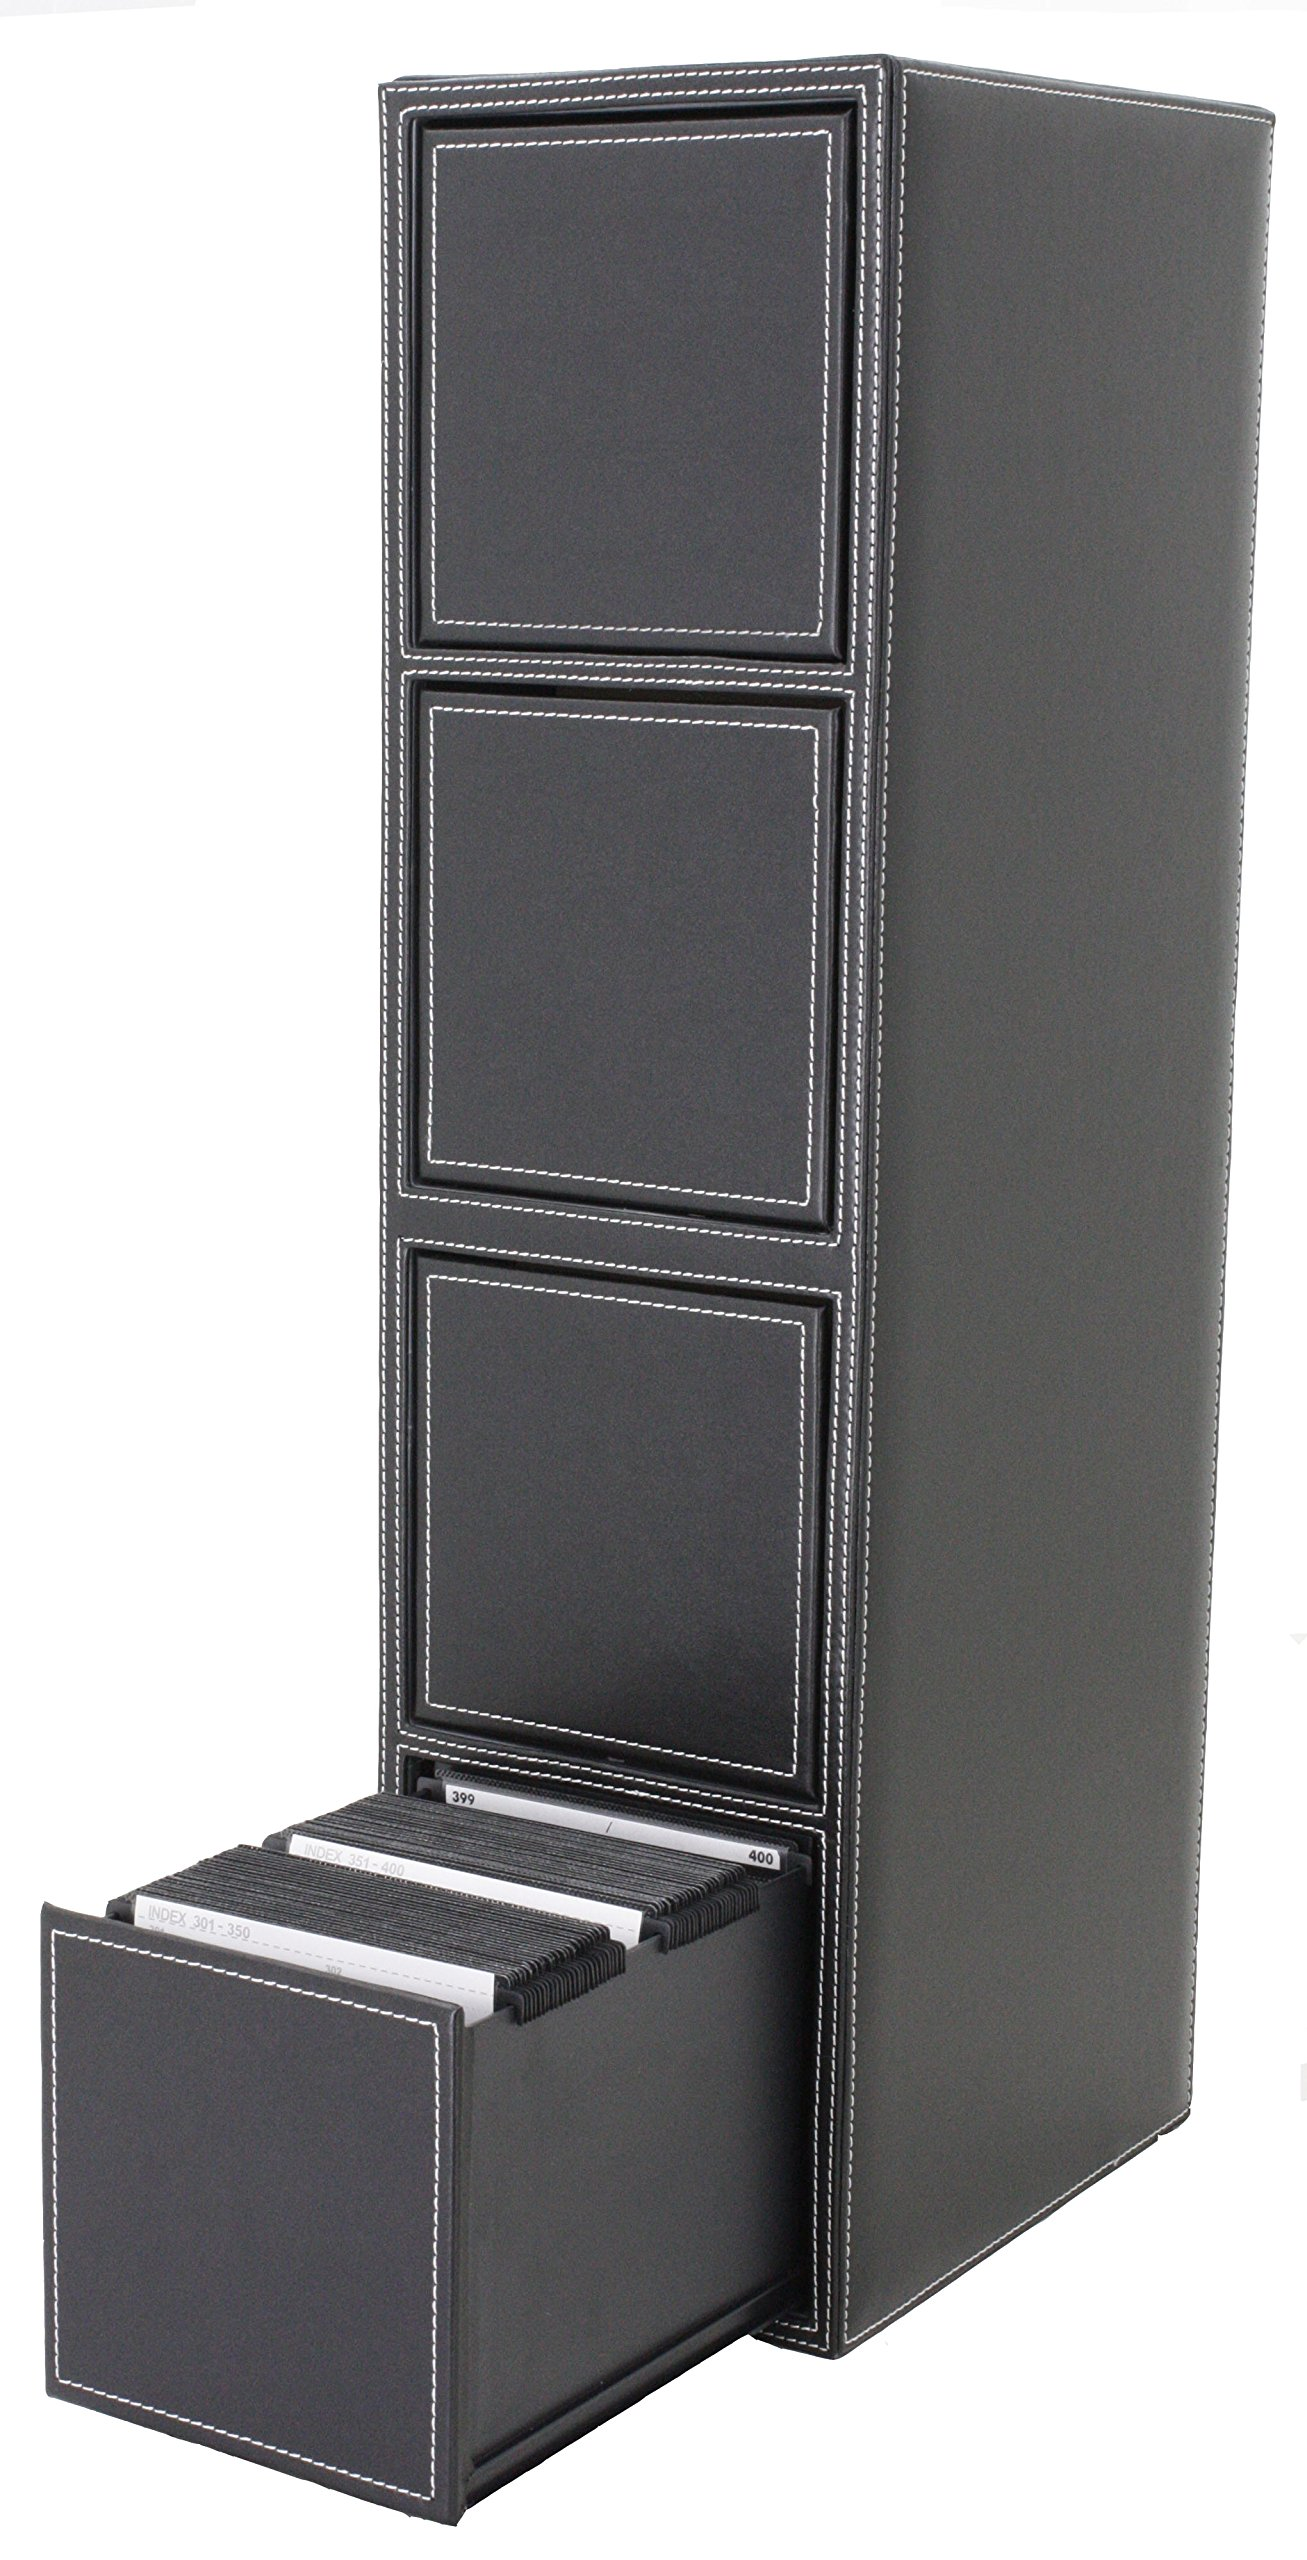 Hipce One Touch 400 CD/DVD Filing Cabinet